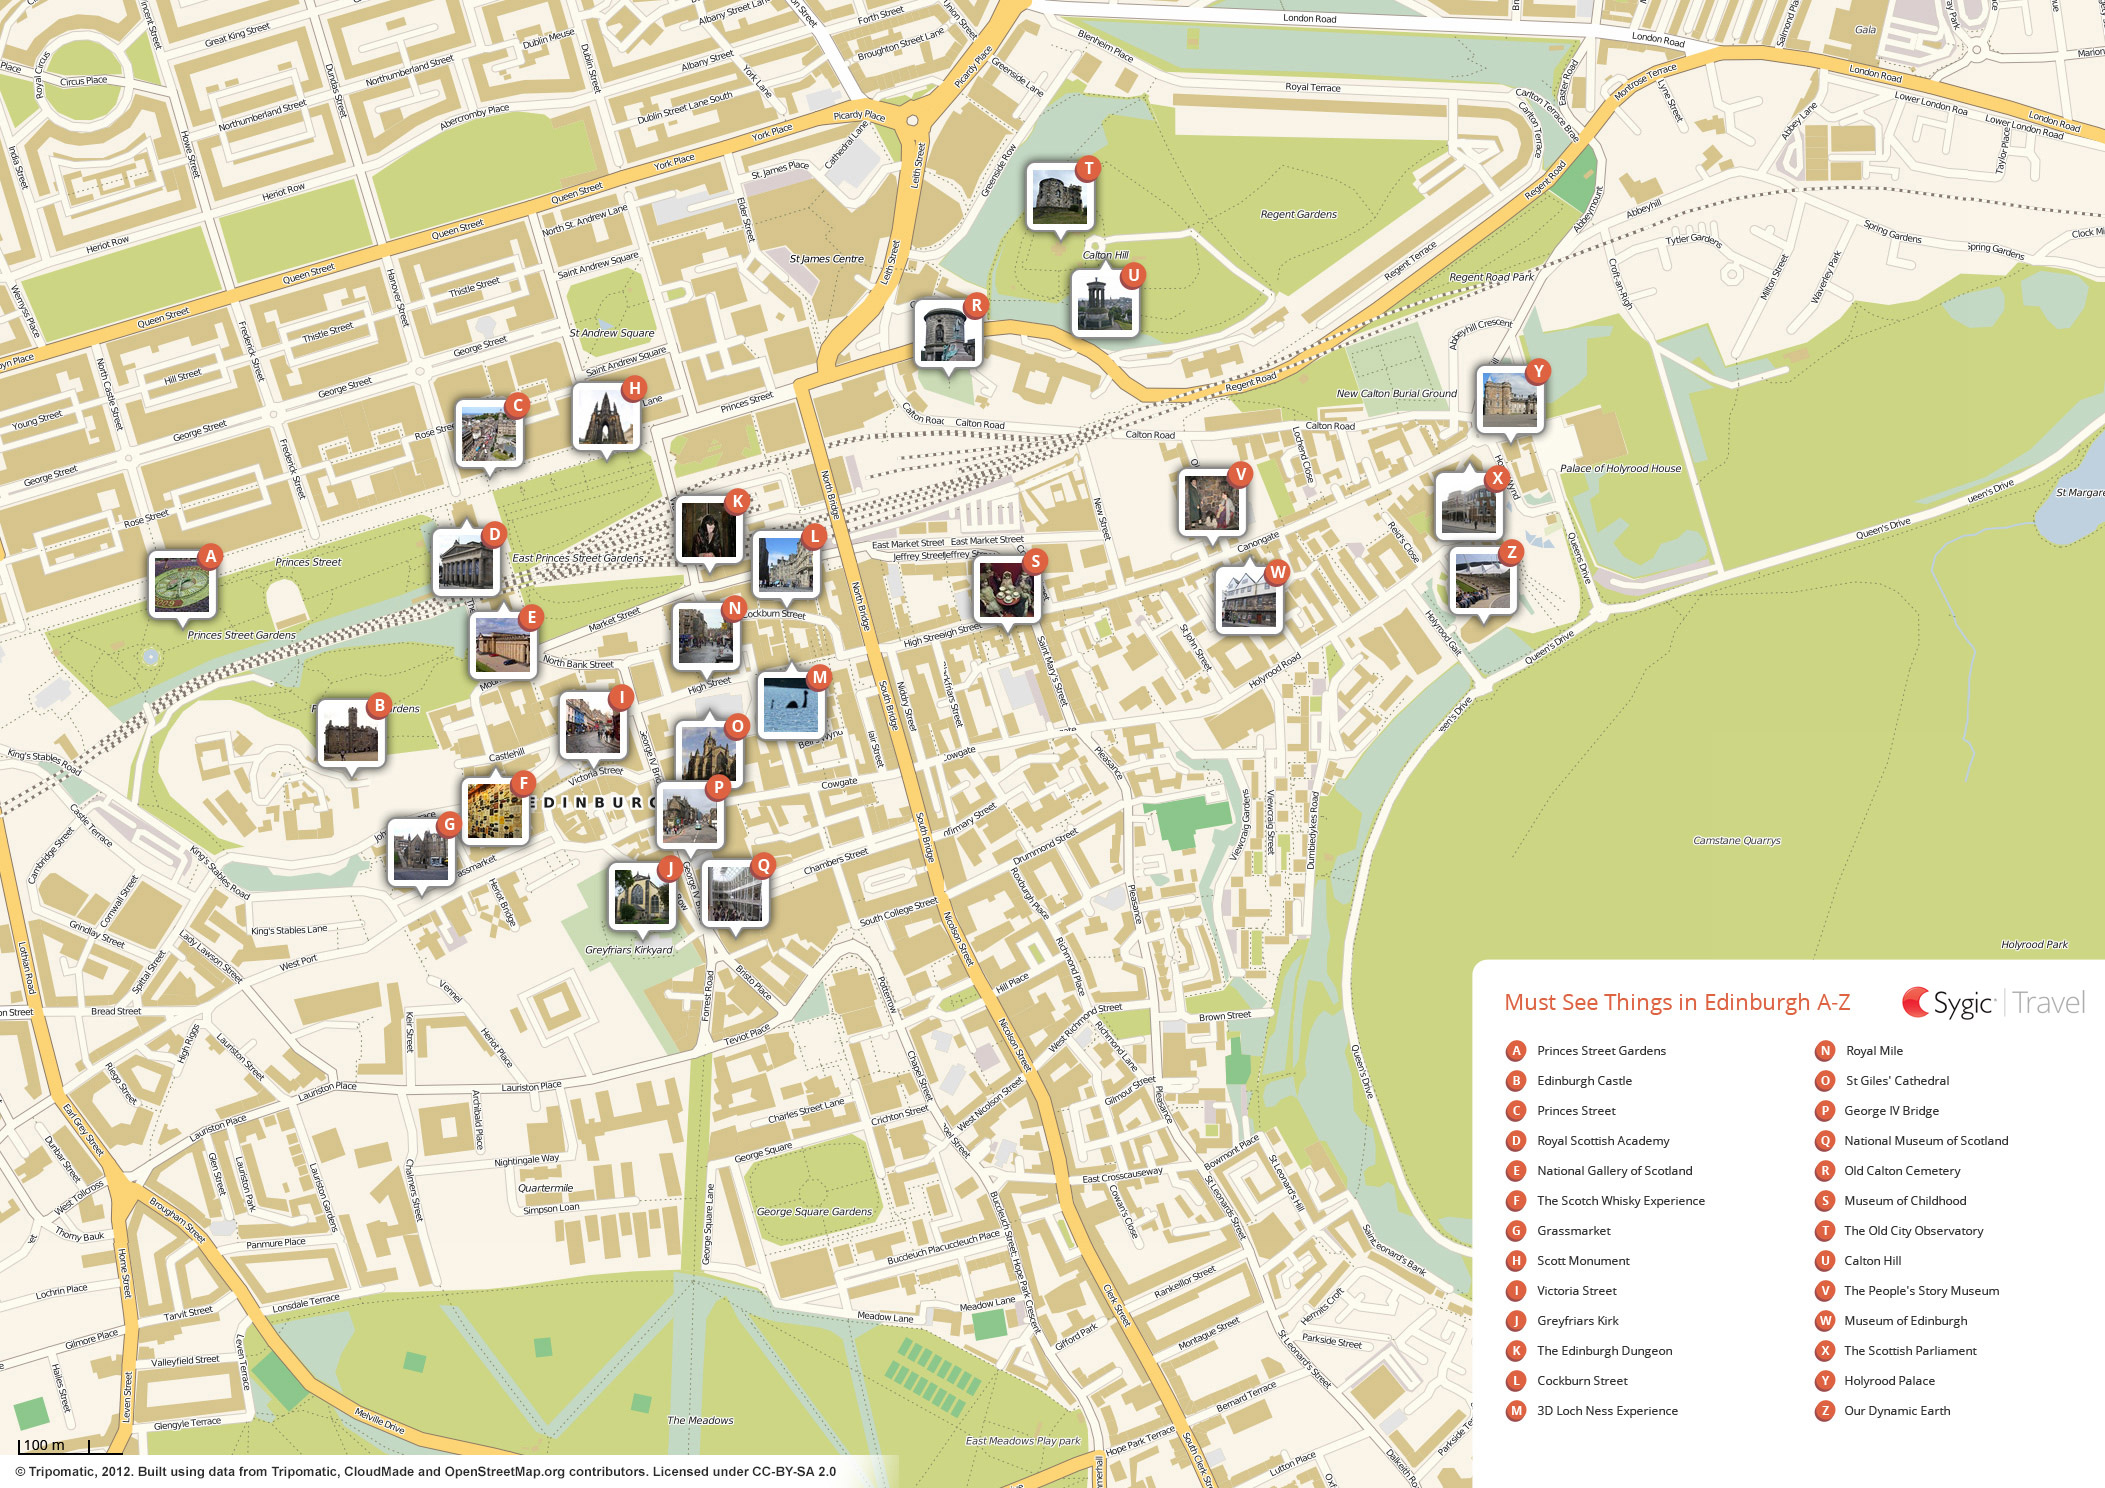 Edinburgh Printable Tourist Map – Tourist Map of Berlin